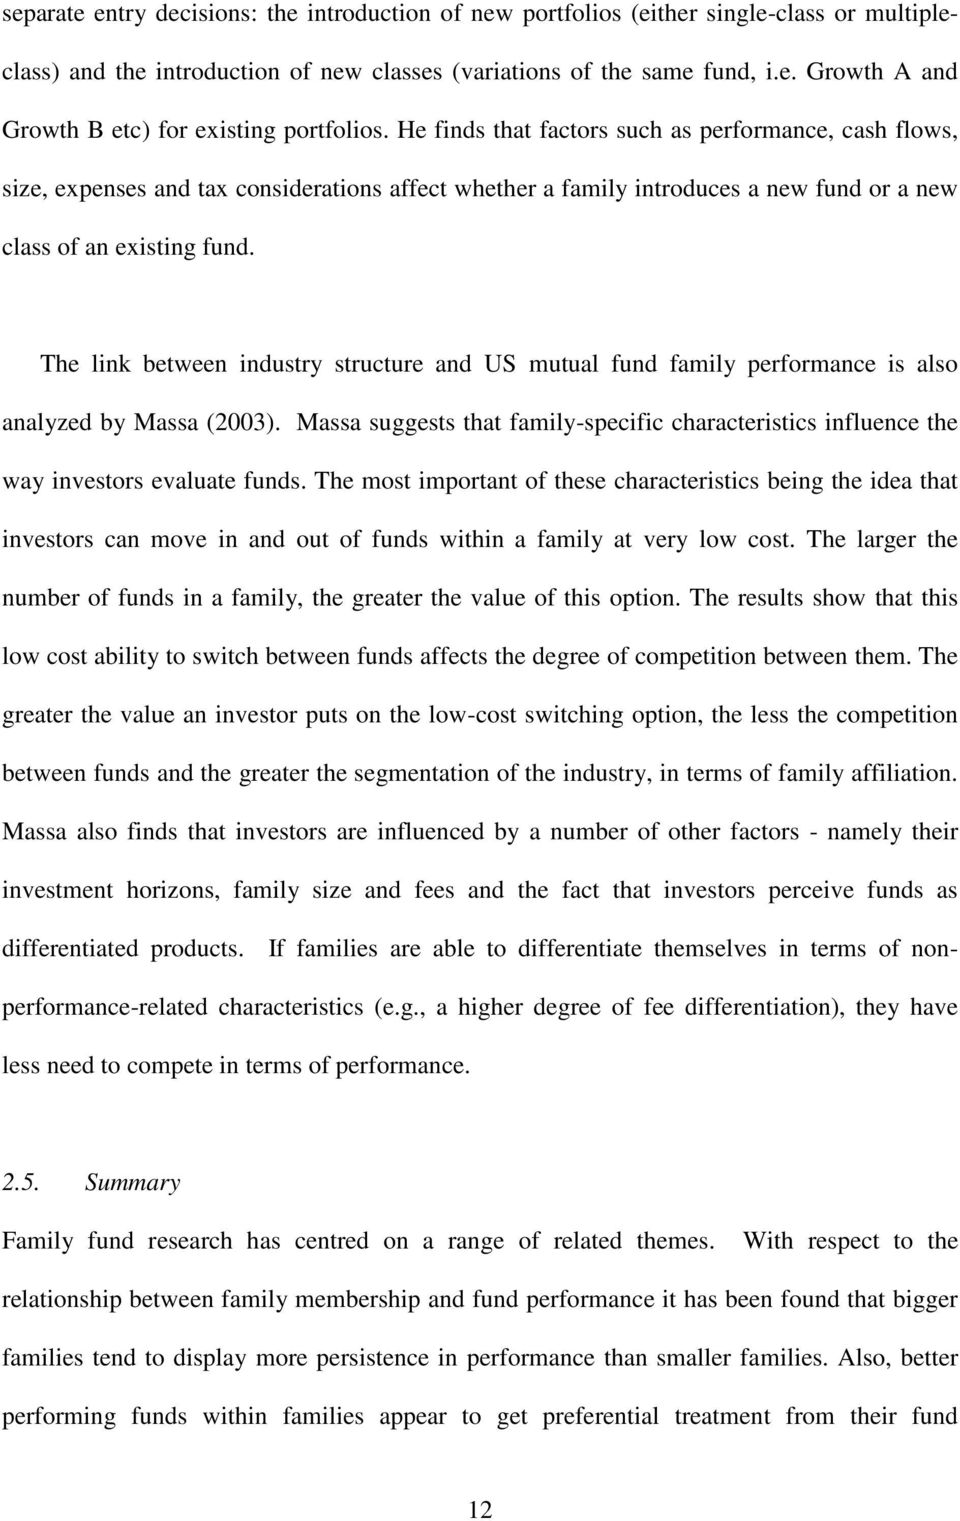 The link between industry structure and US mutual fund family performance is also analyzed by Massa (2003).